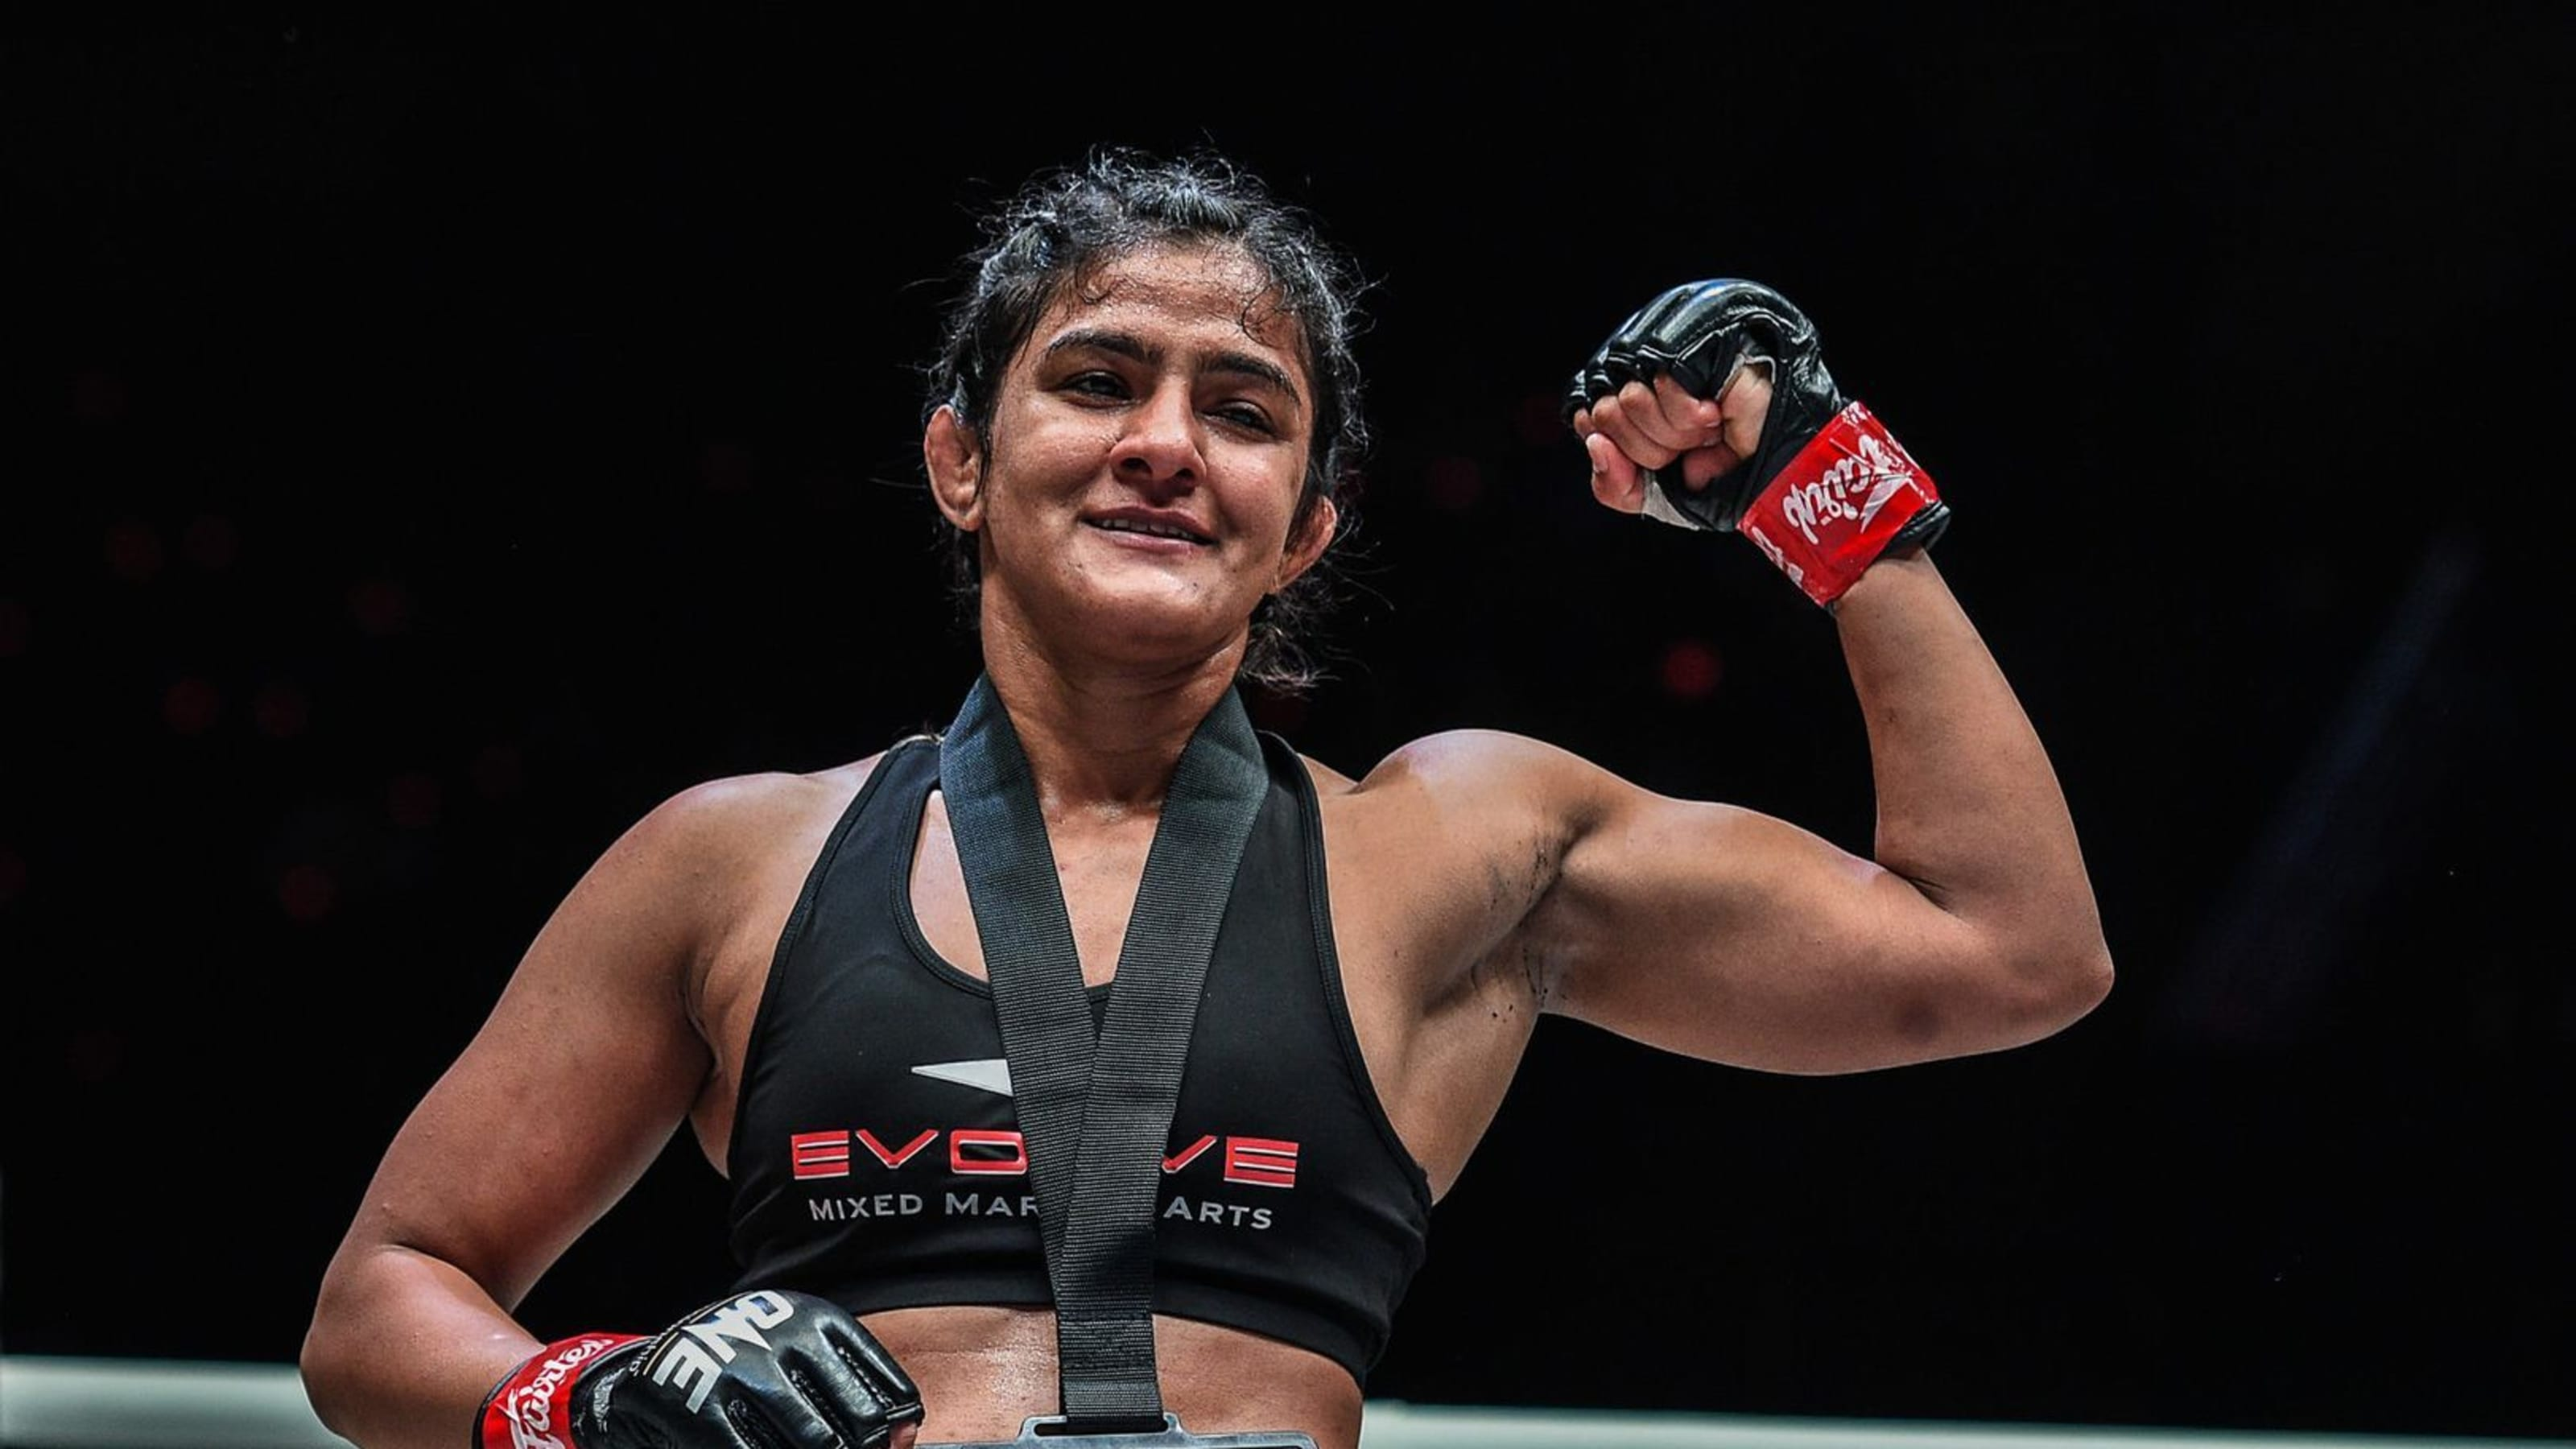 Ritu Phogat vs Nou Srey Pov in ONE Championship: Start time and where to watch on live streaming in India